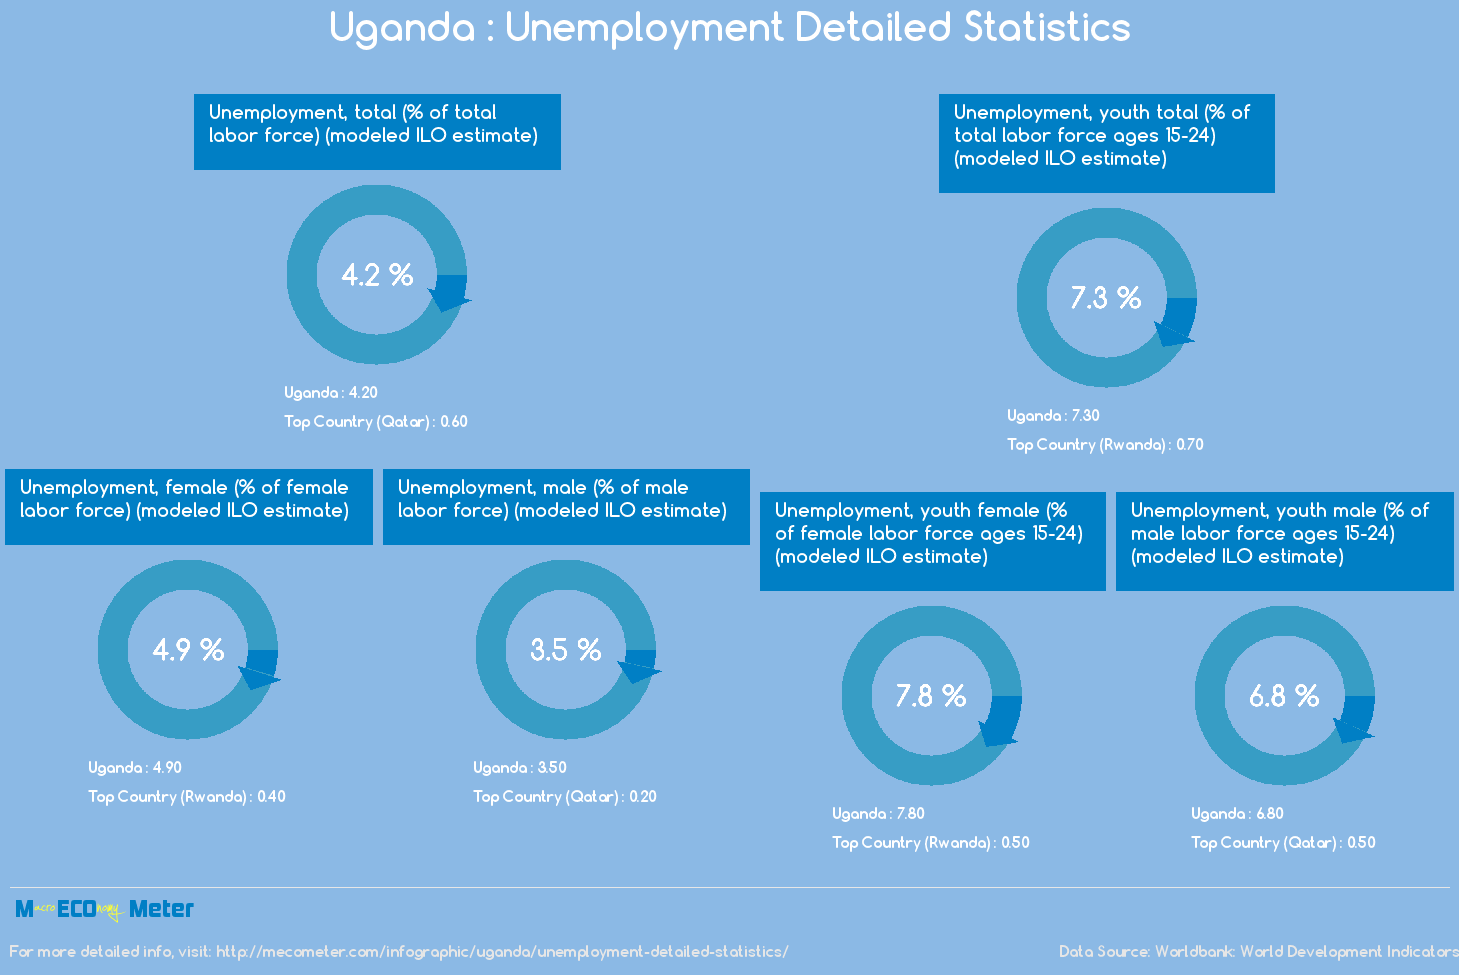 Uganda : Unemployment Detailed Statistics